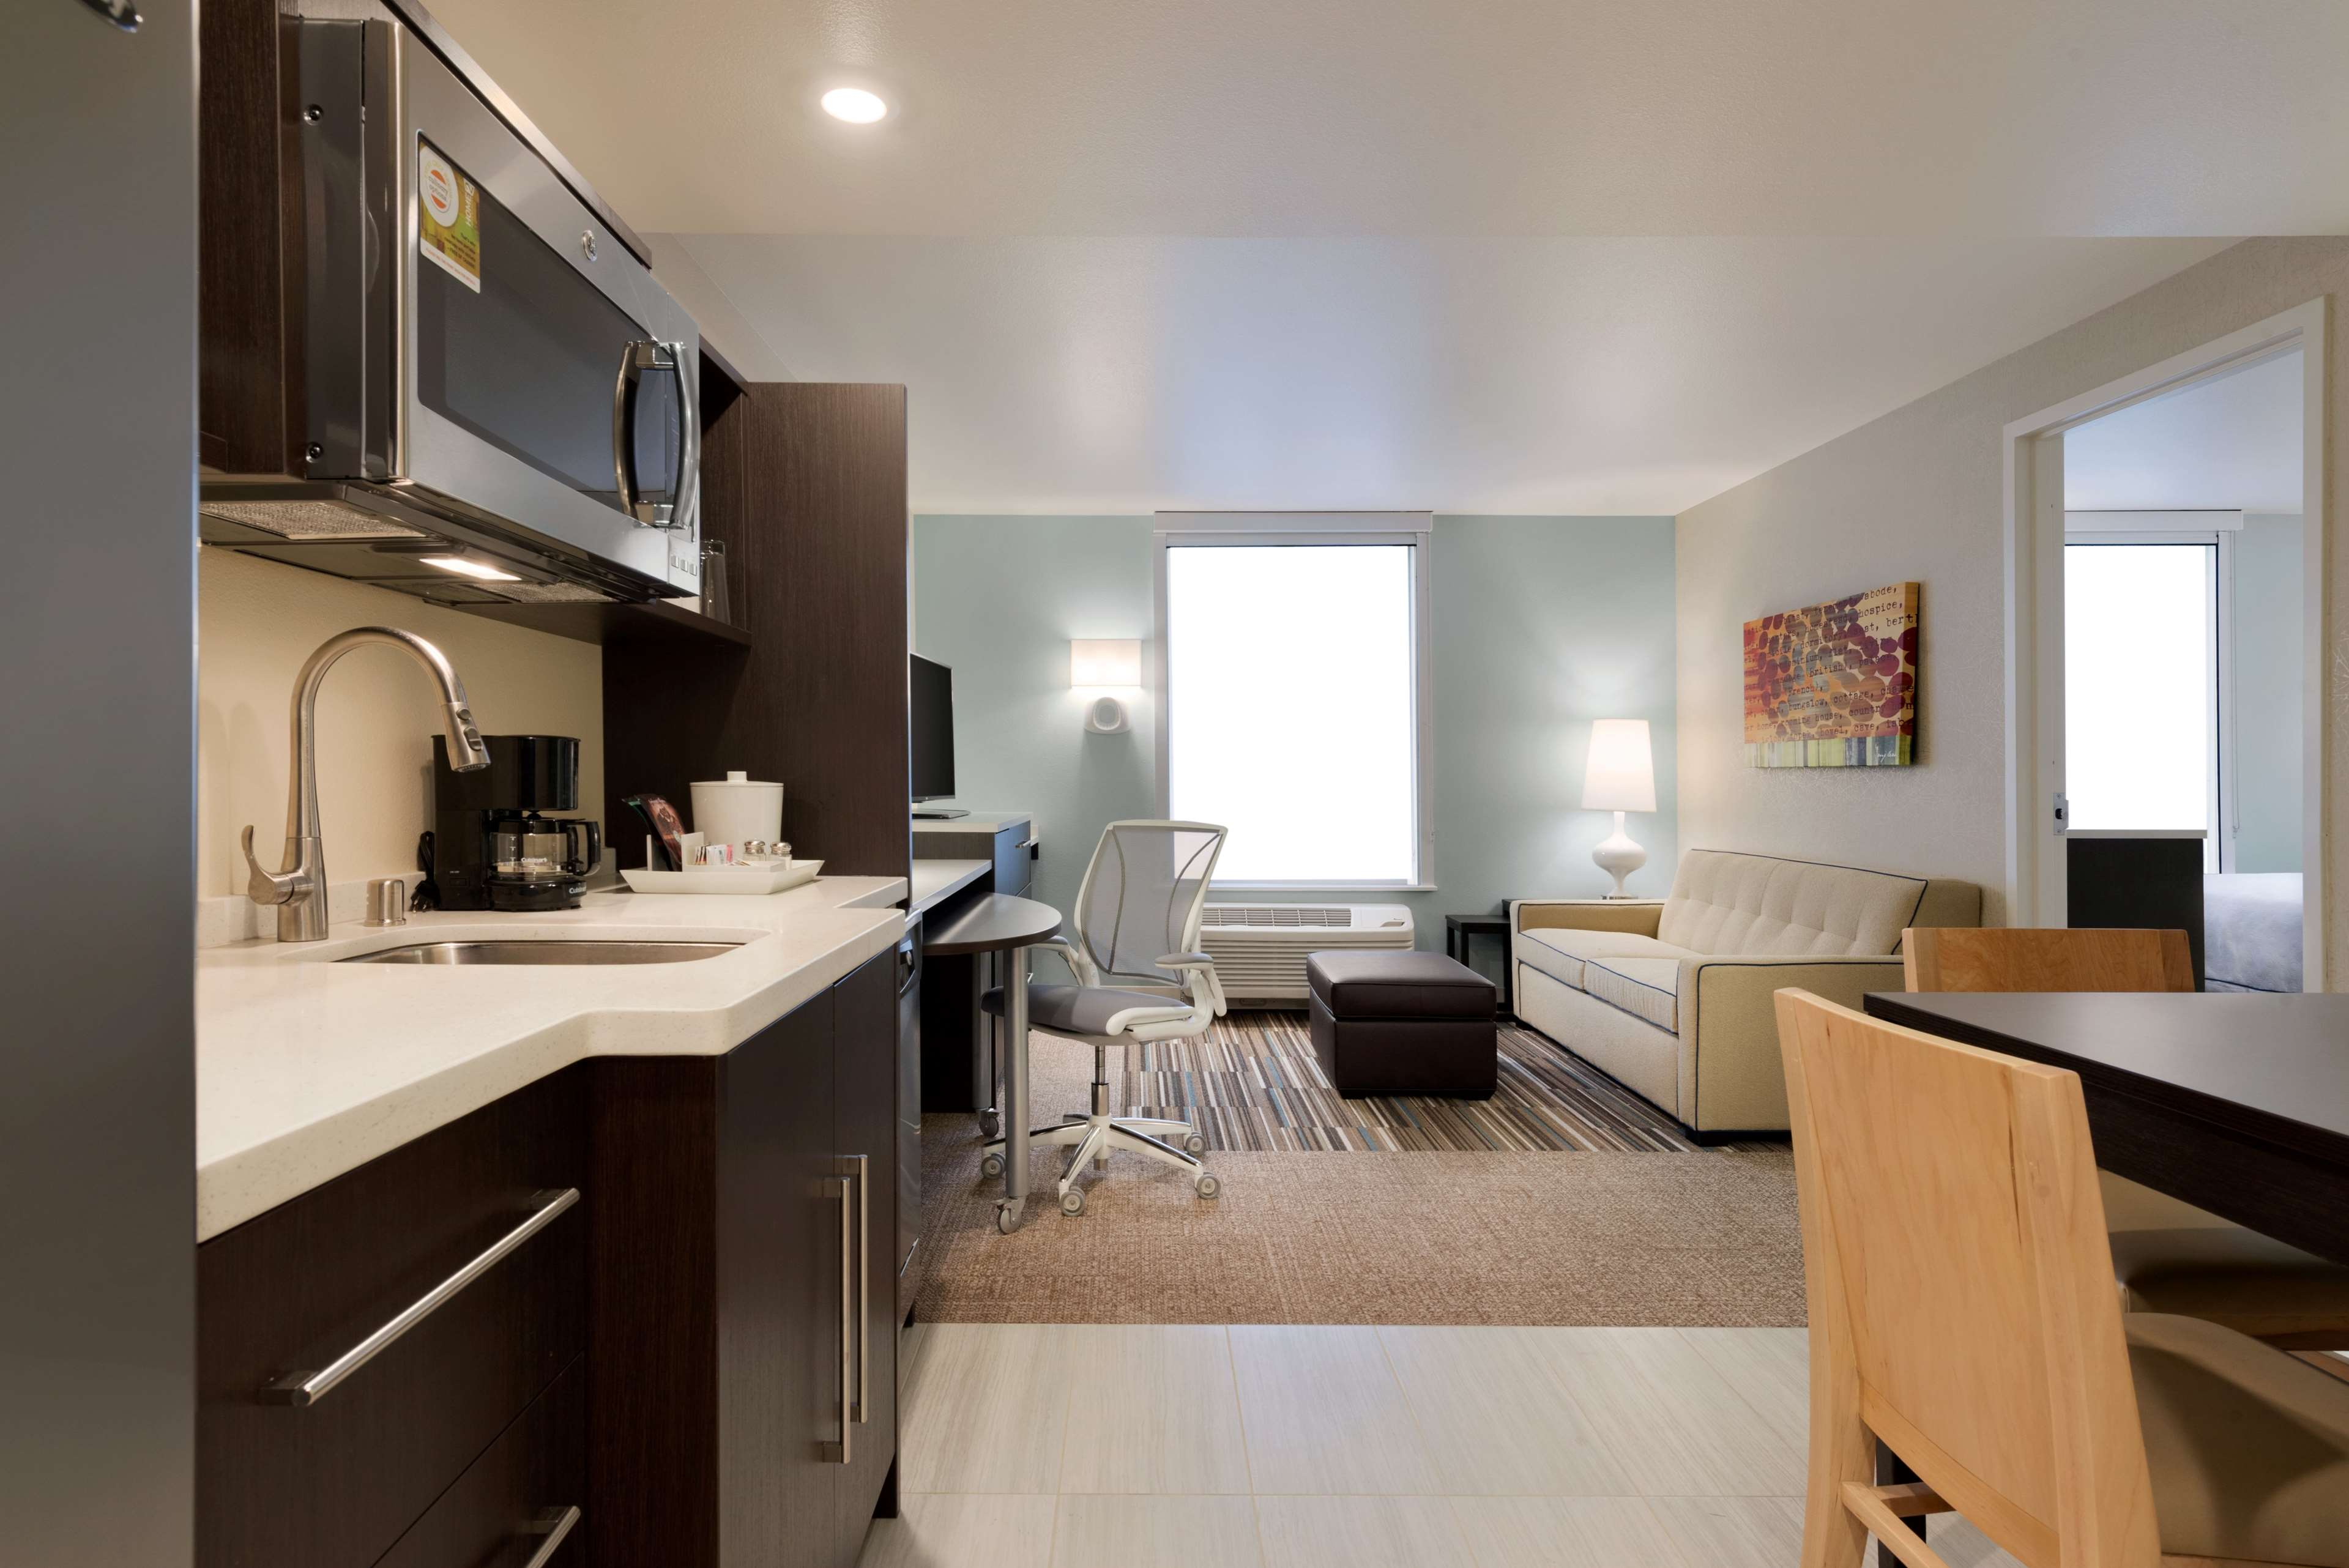 Home2 Suites by Hilton Anchorage/Midtown image 16